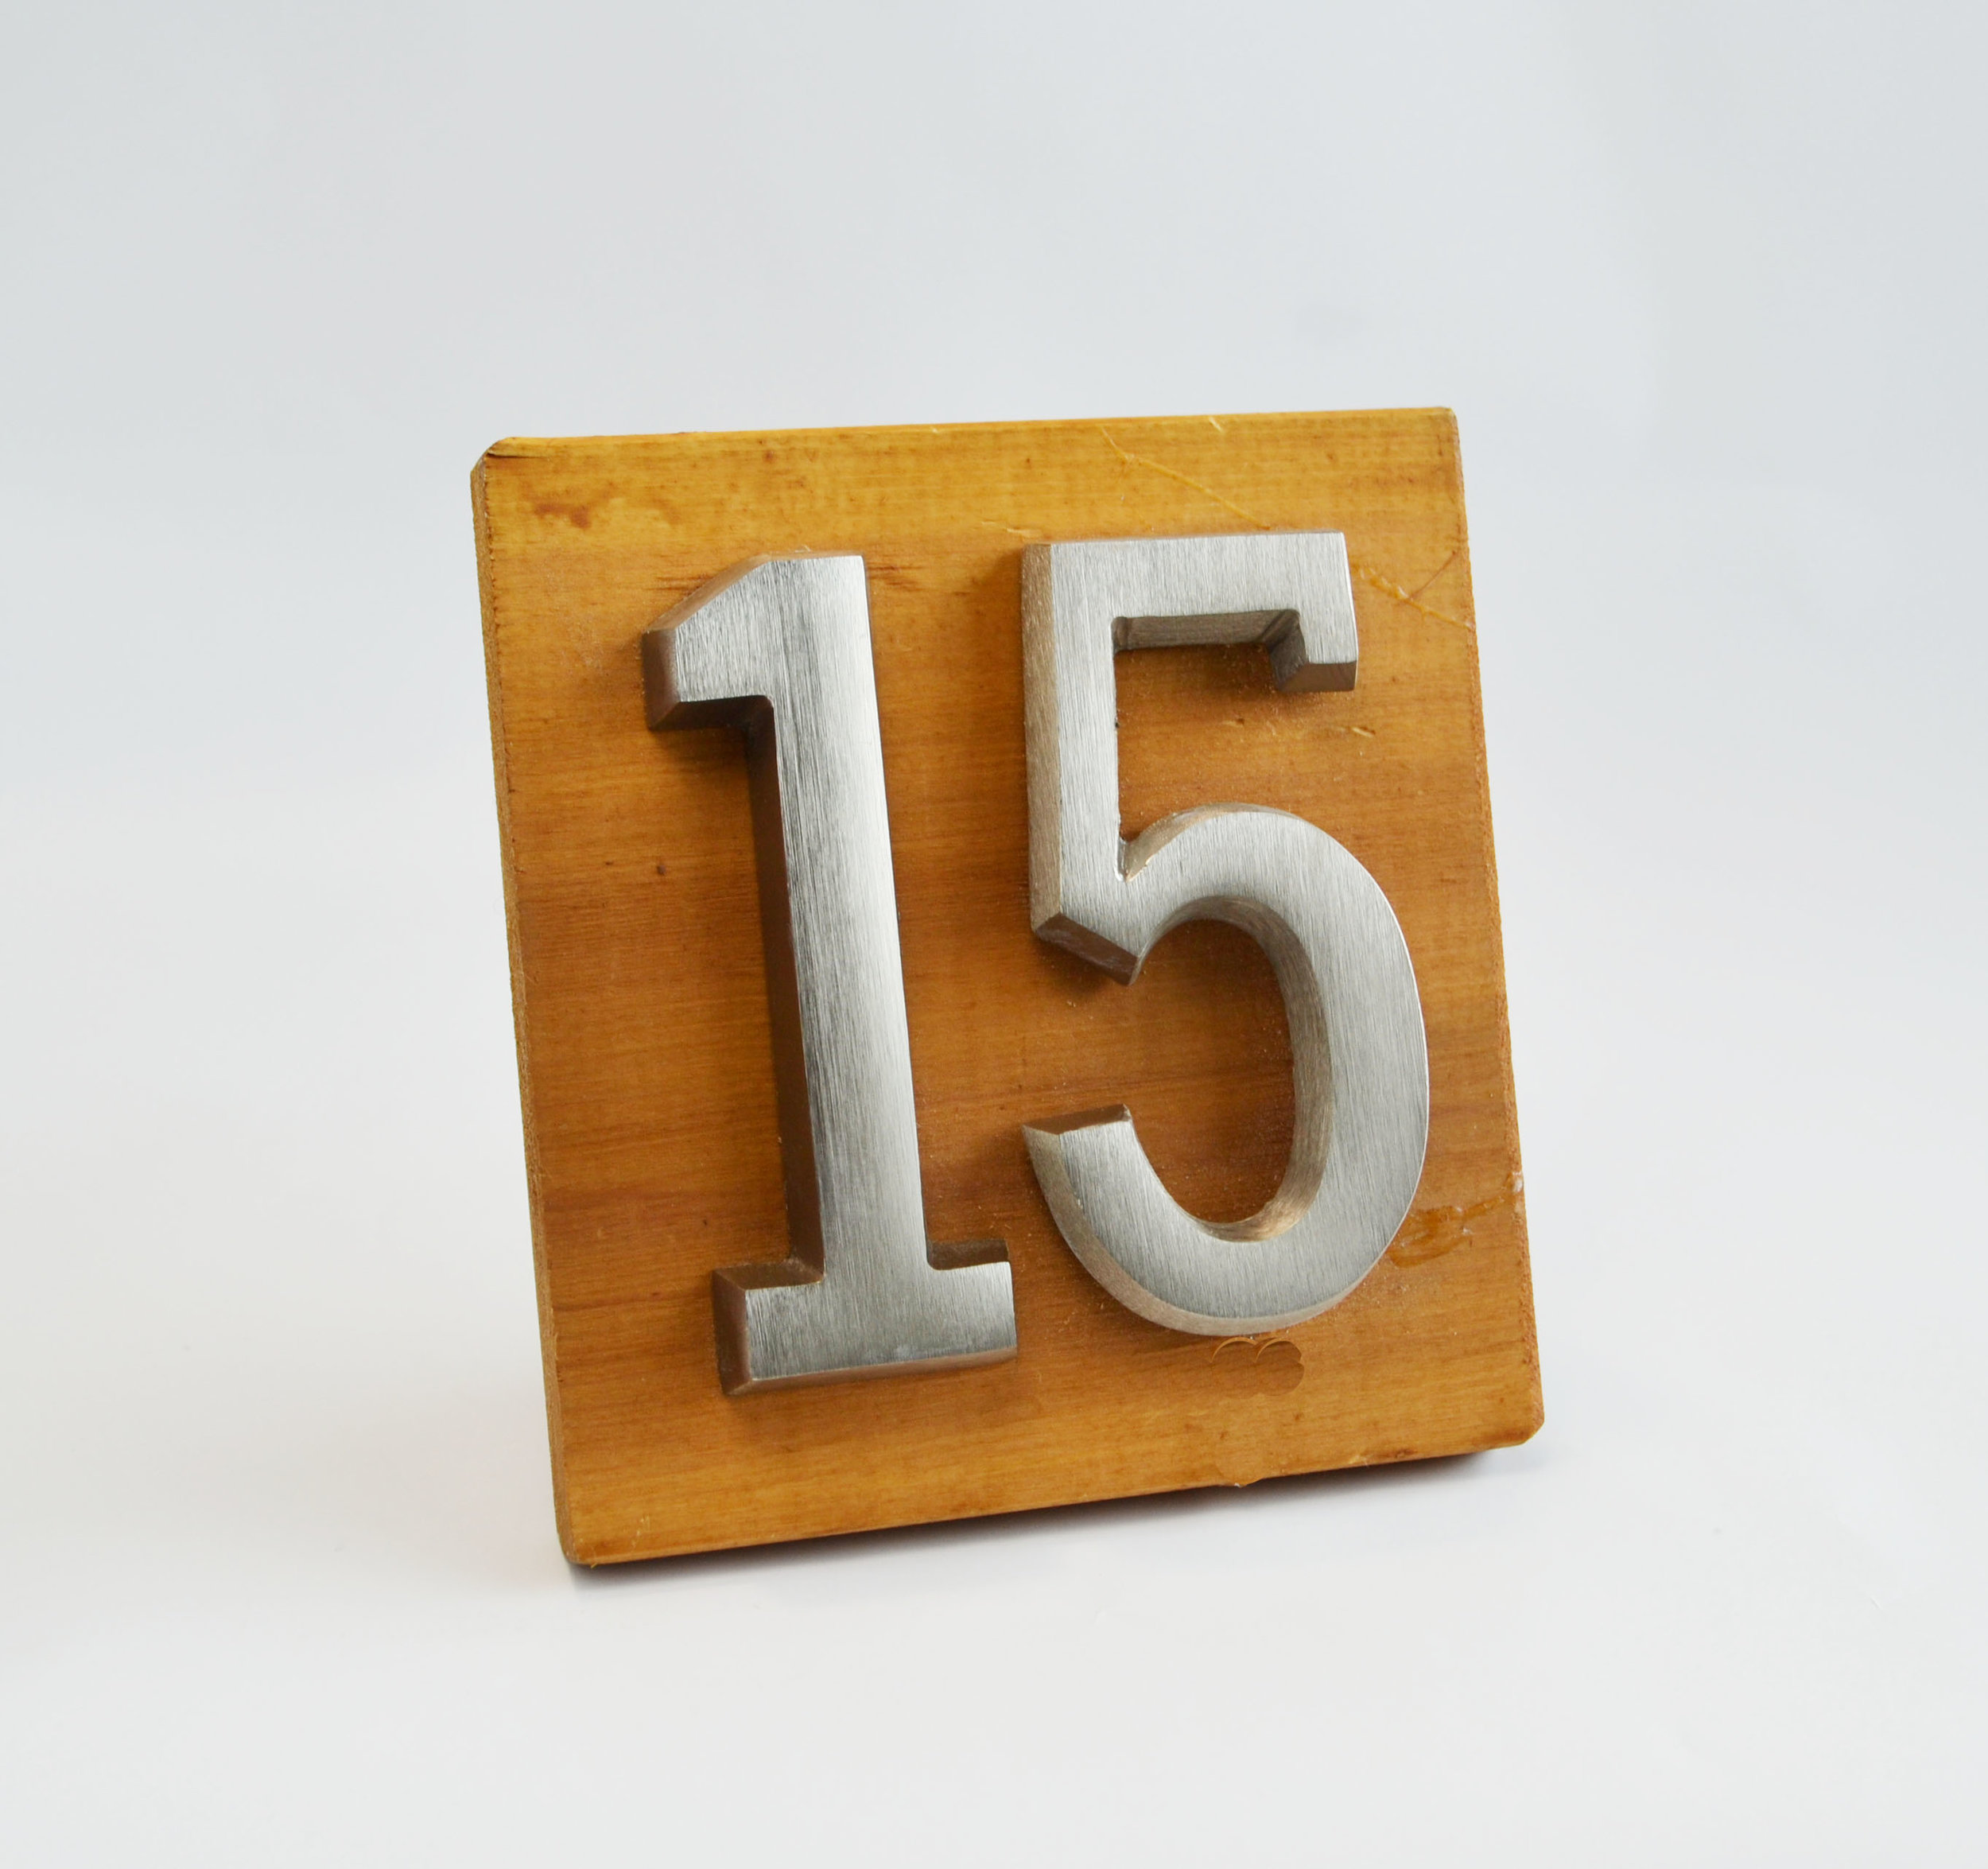 silver table number - wood   Quantity: 16  Price: $8.50